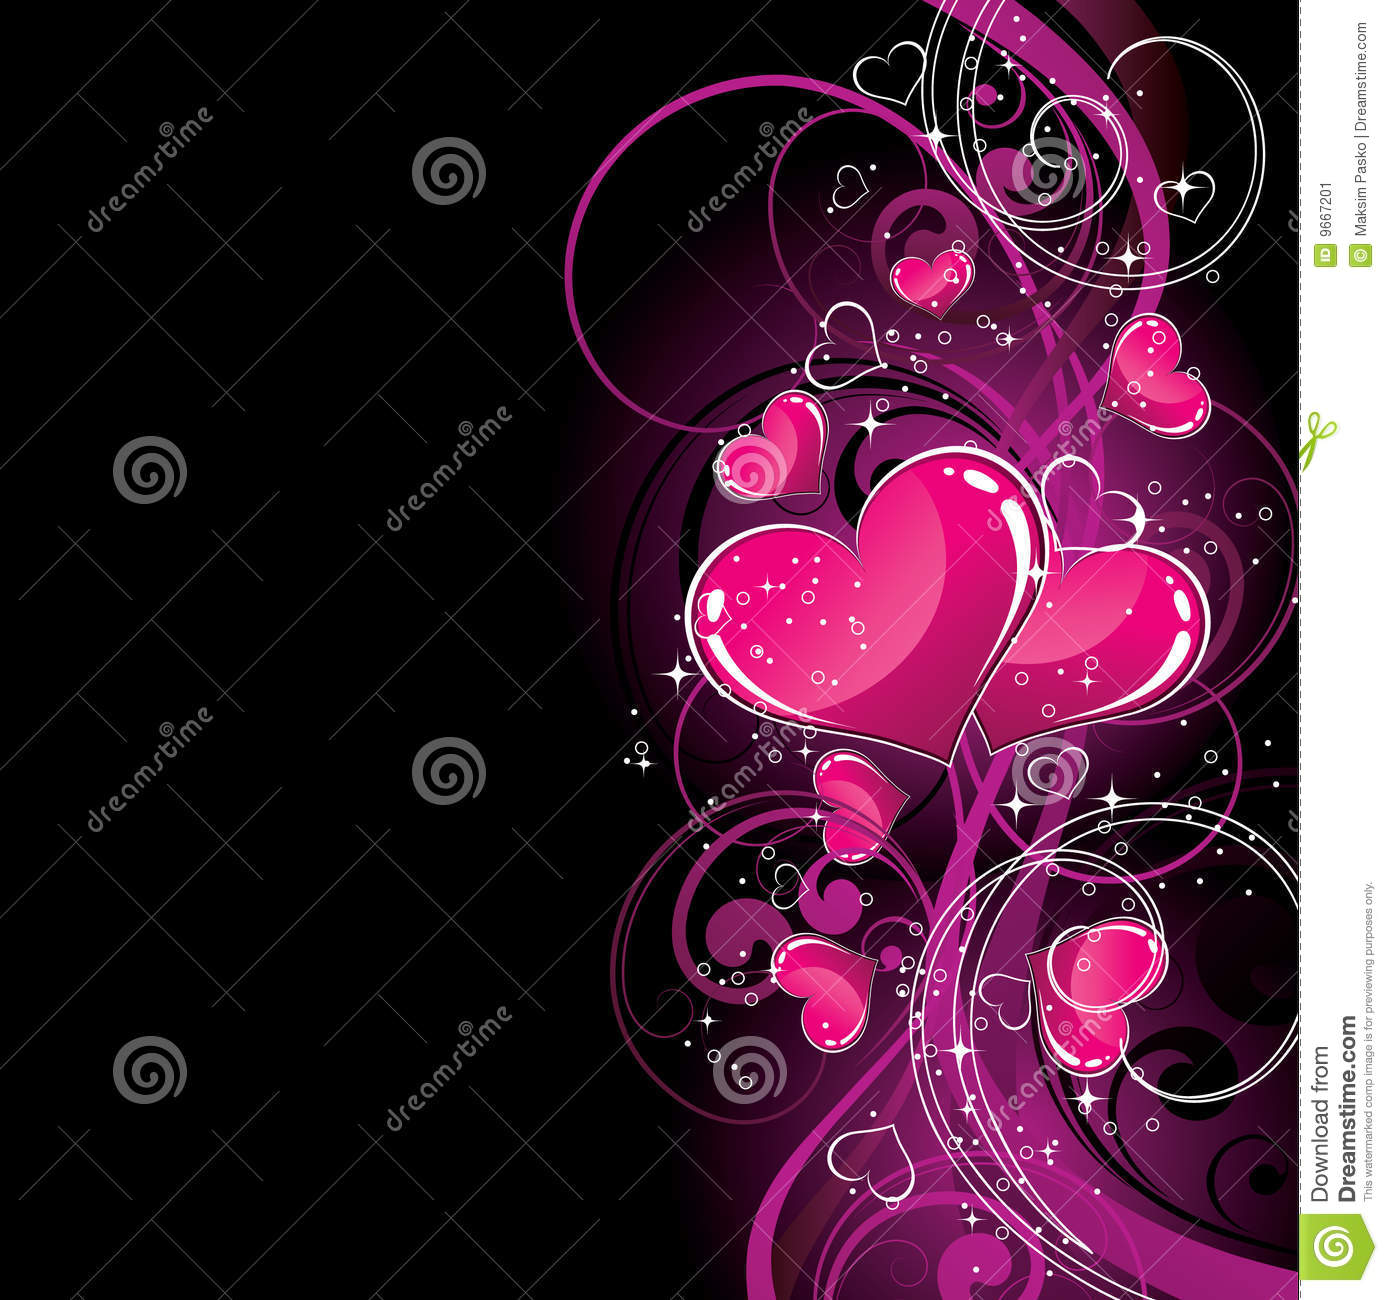 Breast Cancer 3d Wallpaper For Pc Pink Hearts On Black Stock Image Image 9667201